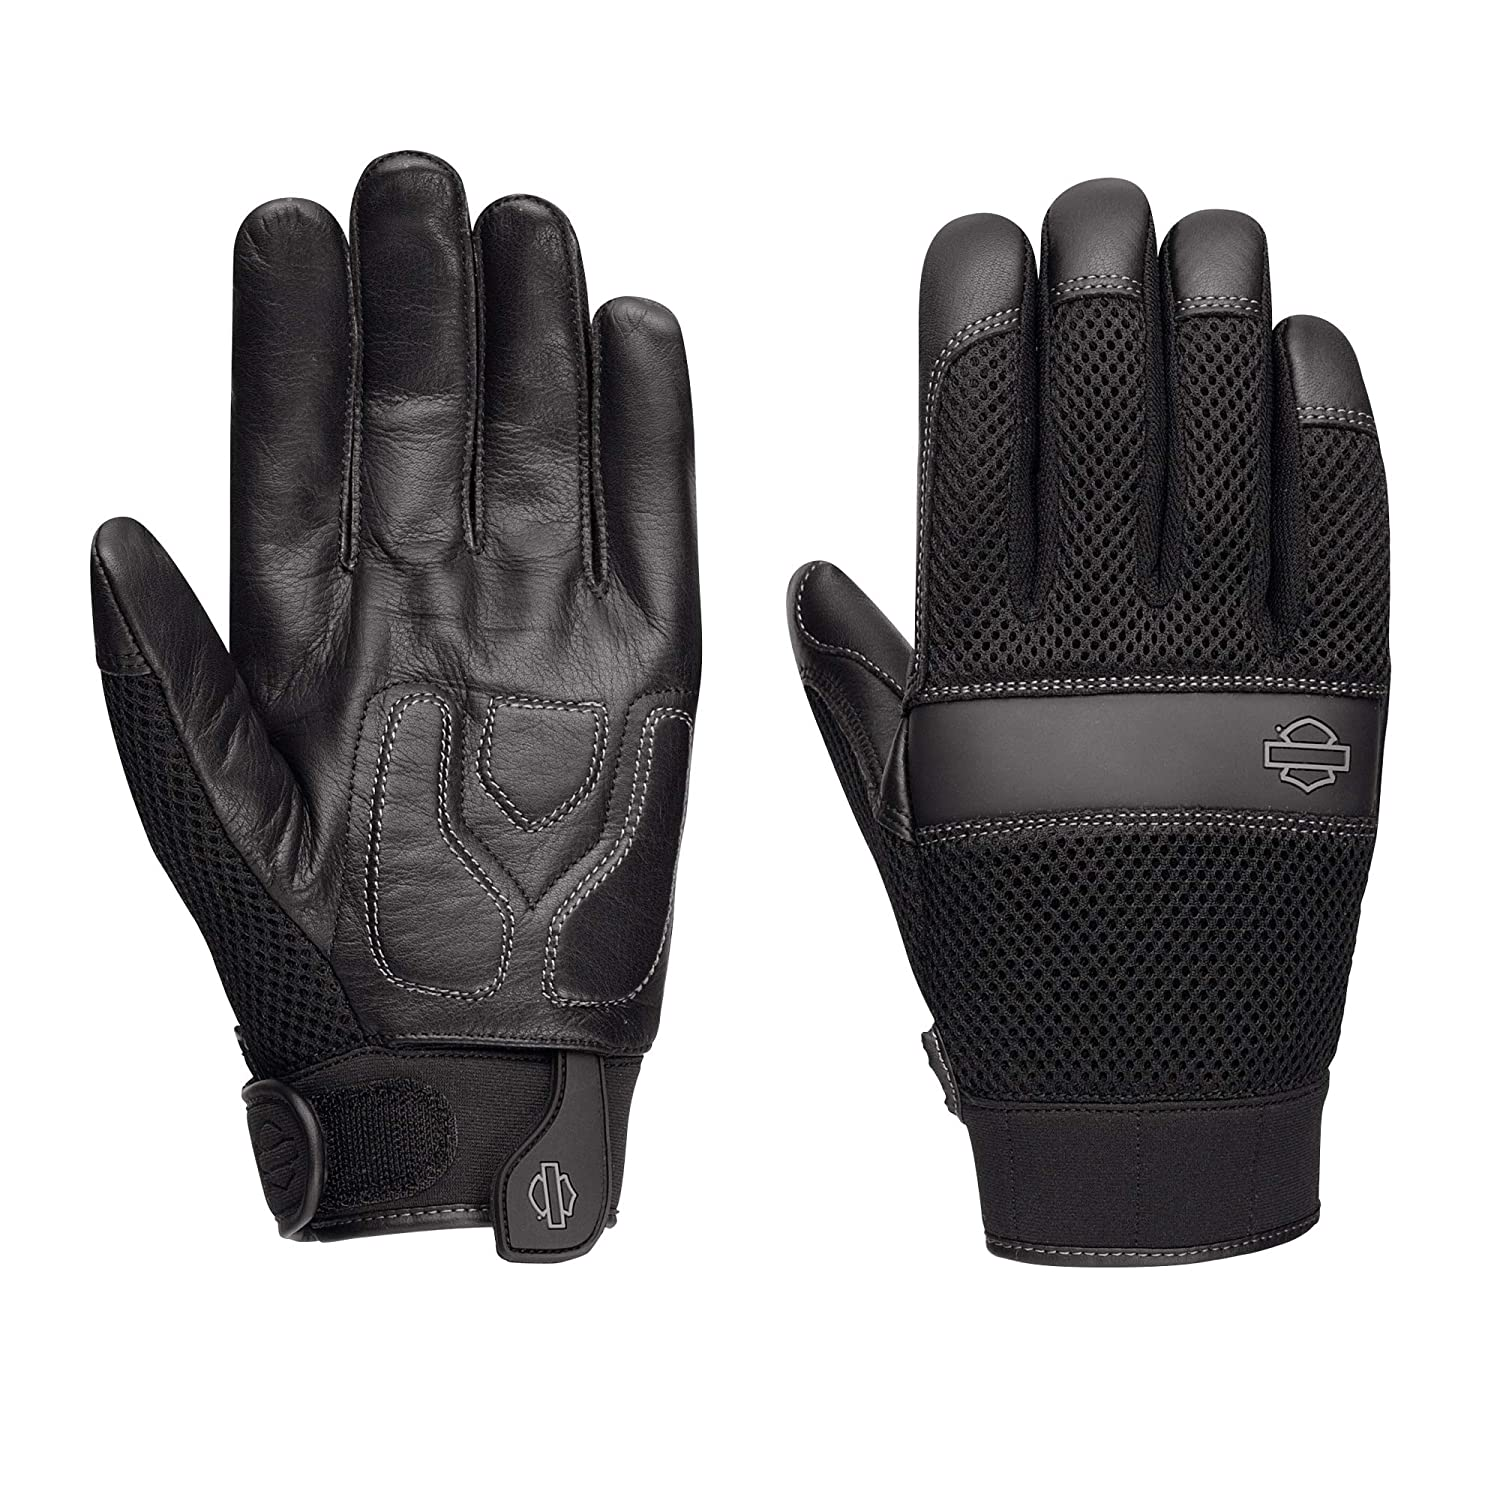 Harley-Davidson Official Men's Removable Pad Gloves